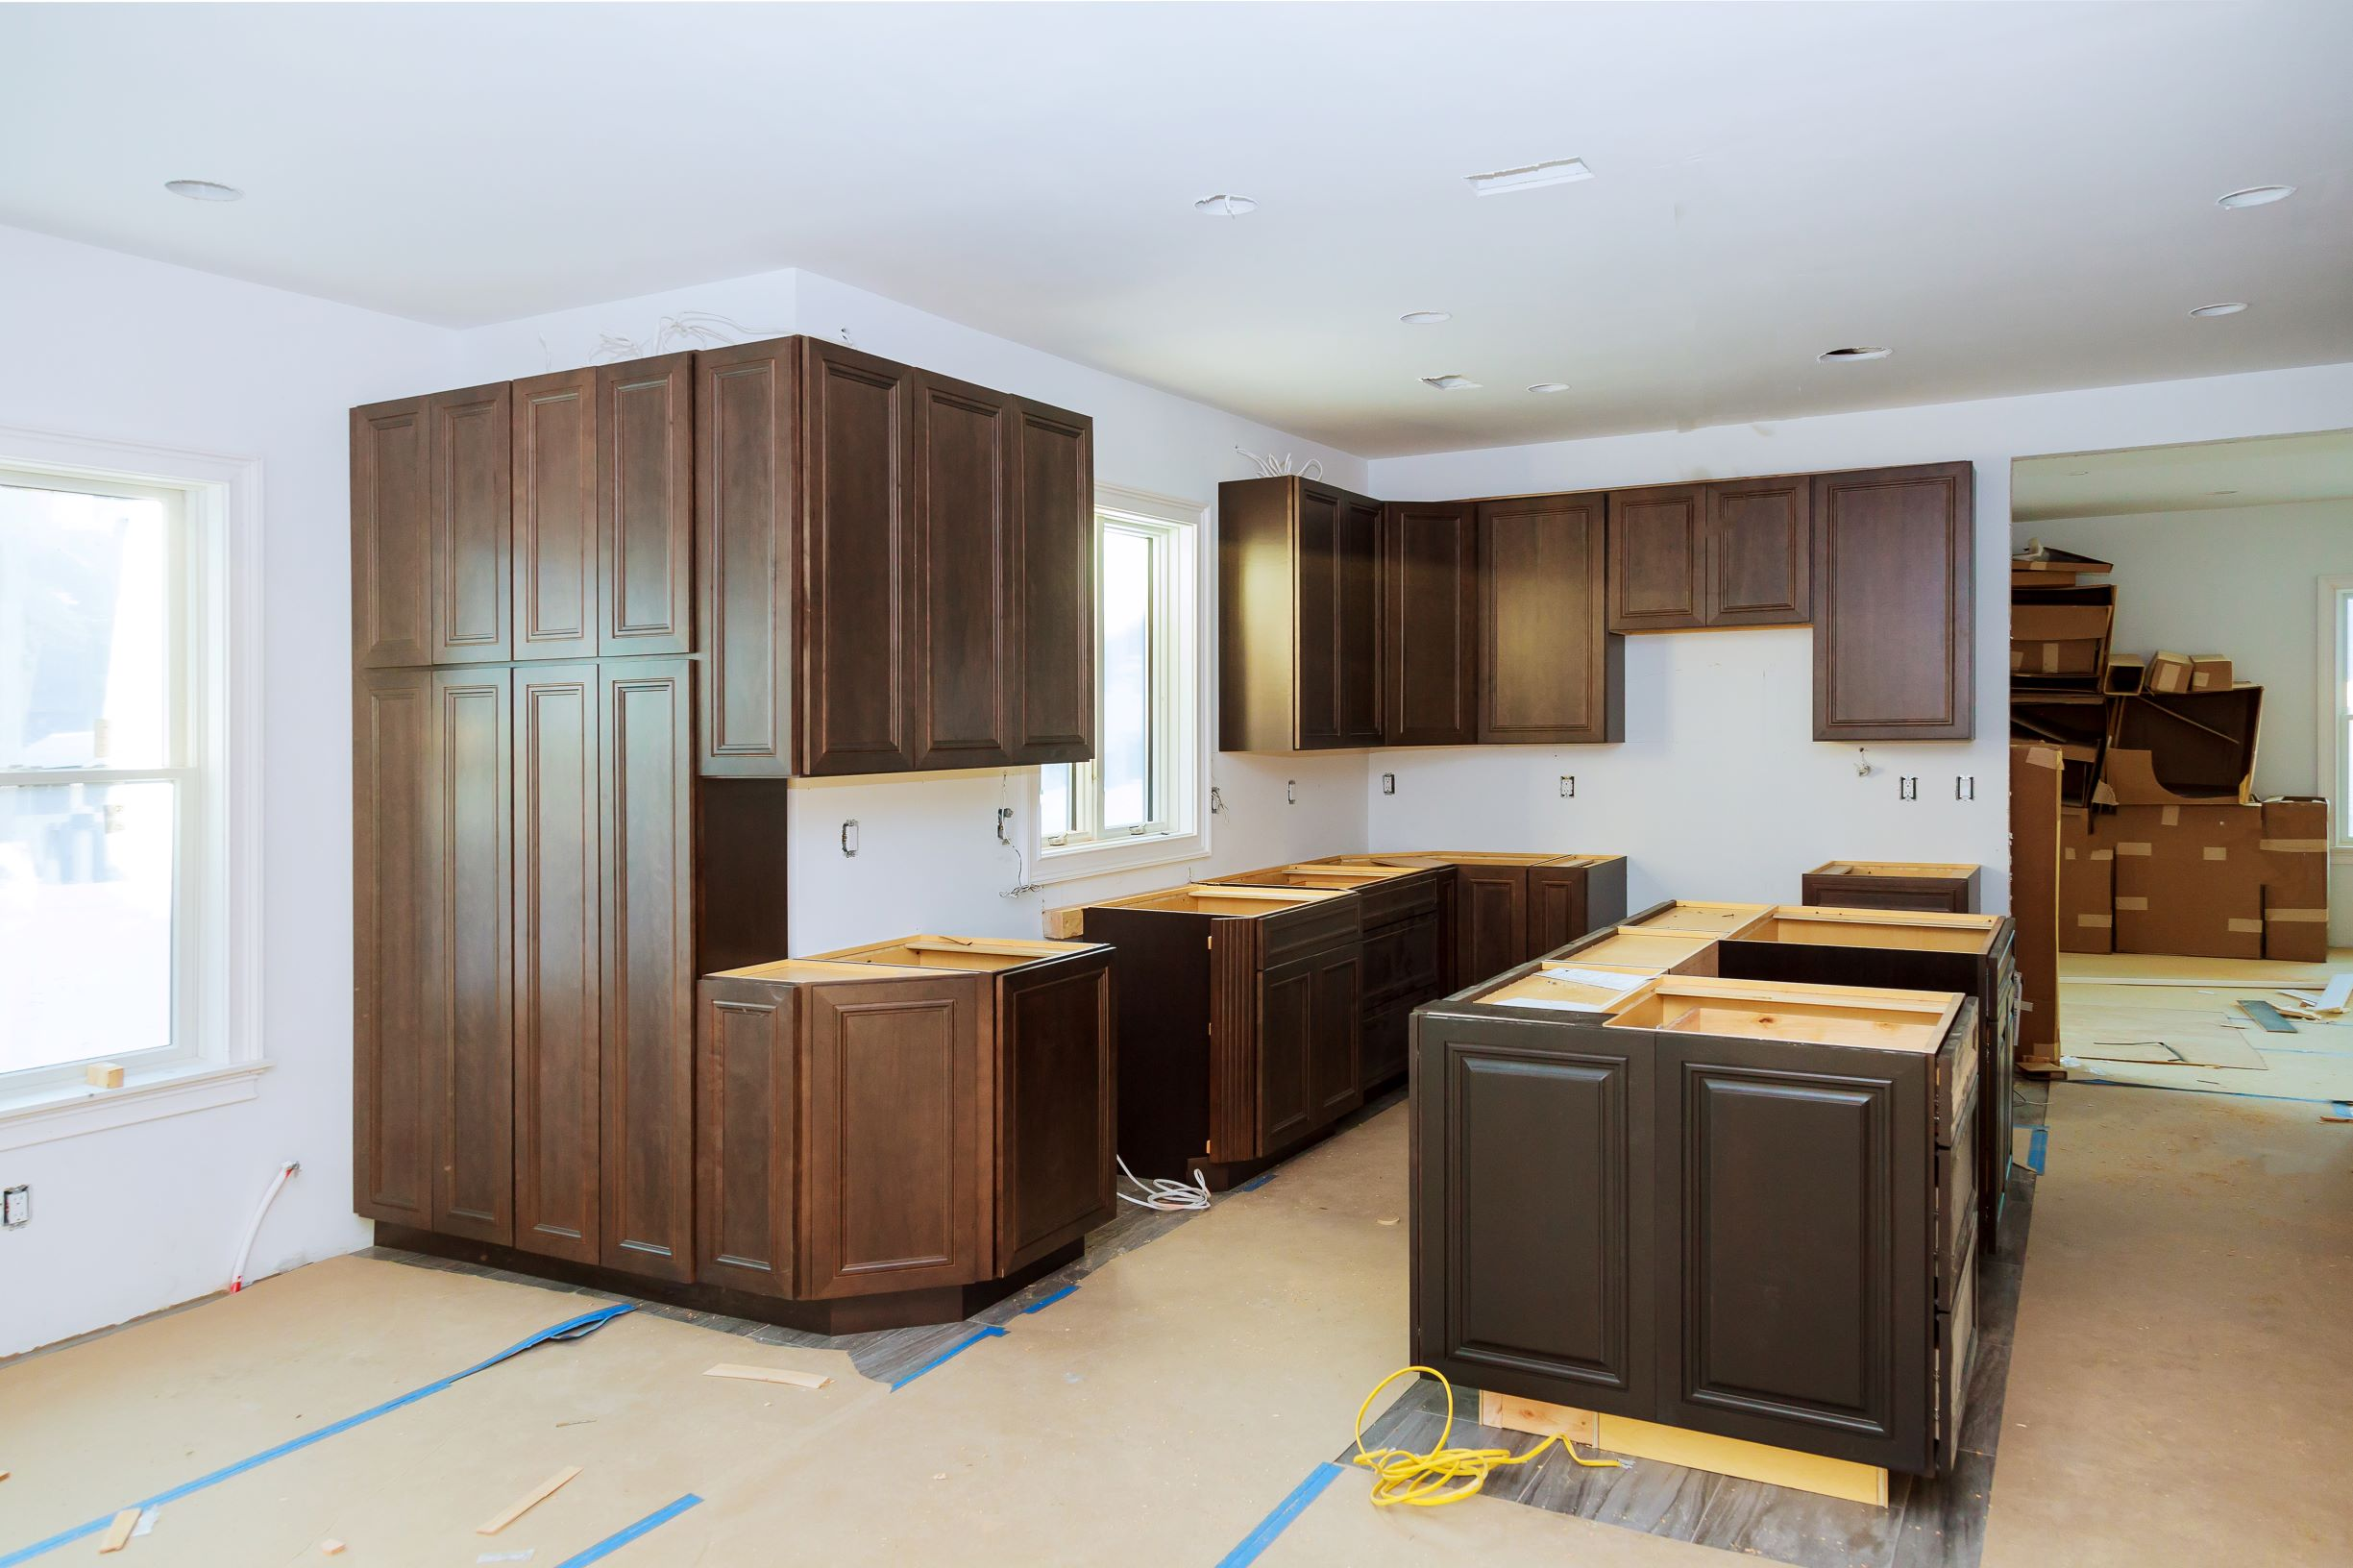 Prepare for a kitchen remodel ahead of time.